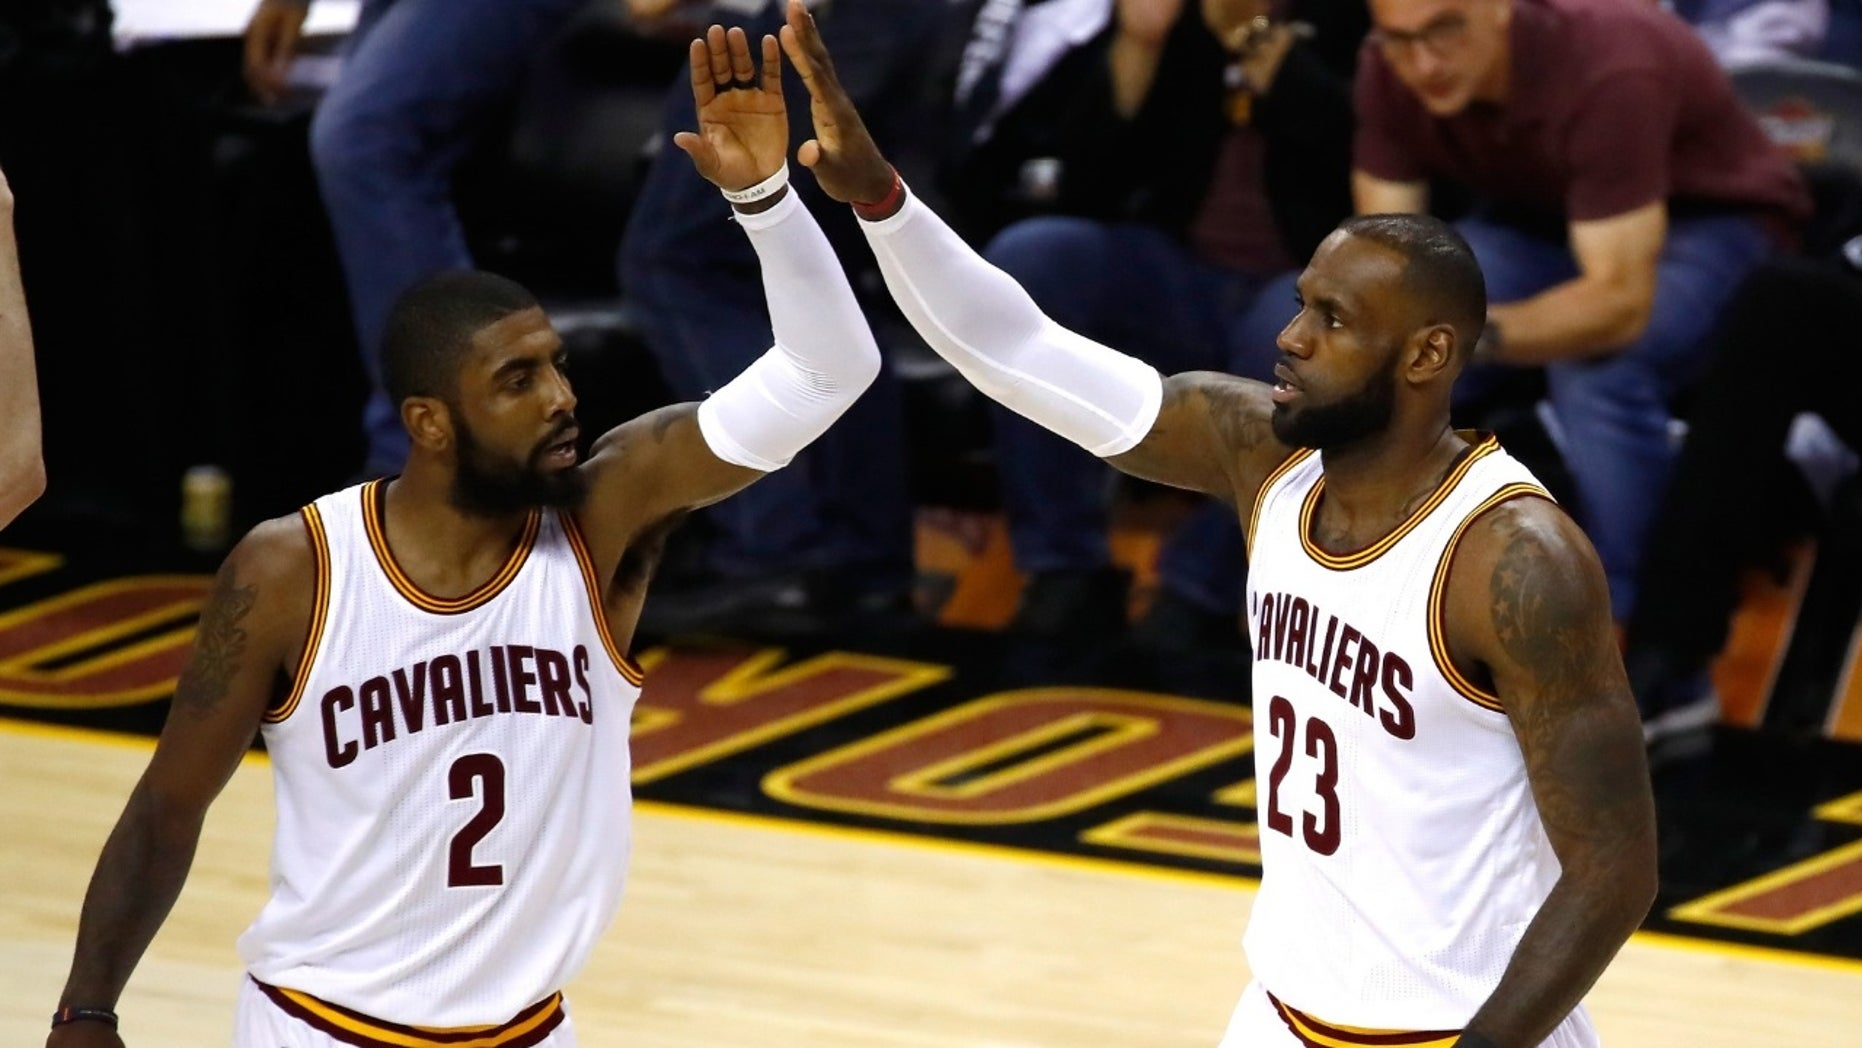 Kyrie Irving [left] said he called LeBron James [right] to apologize.